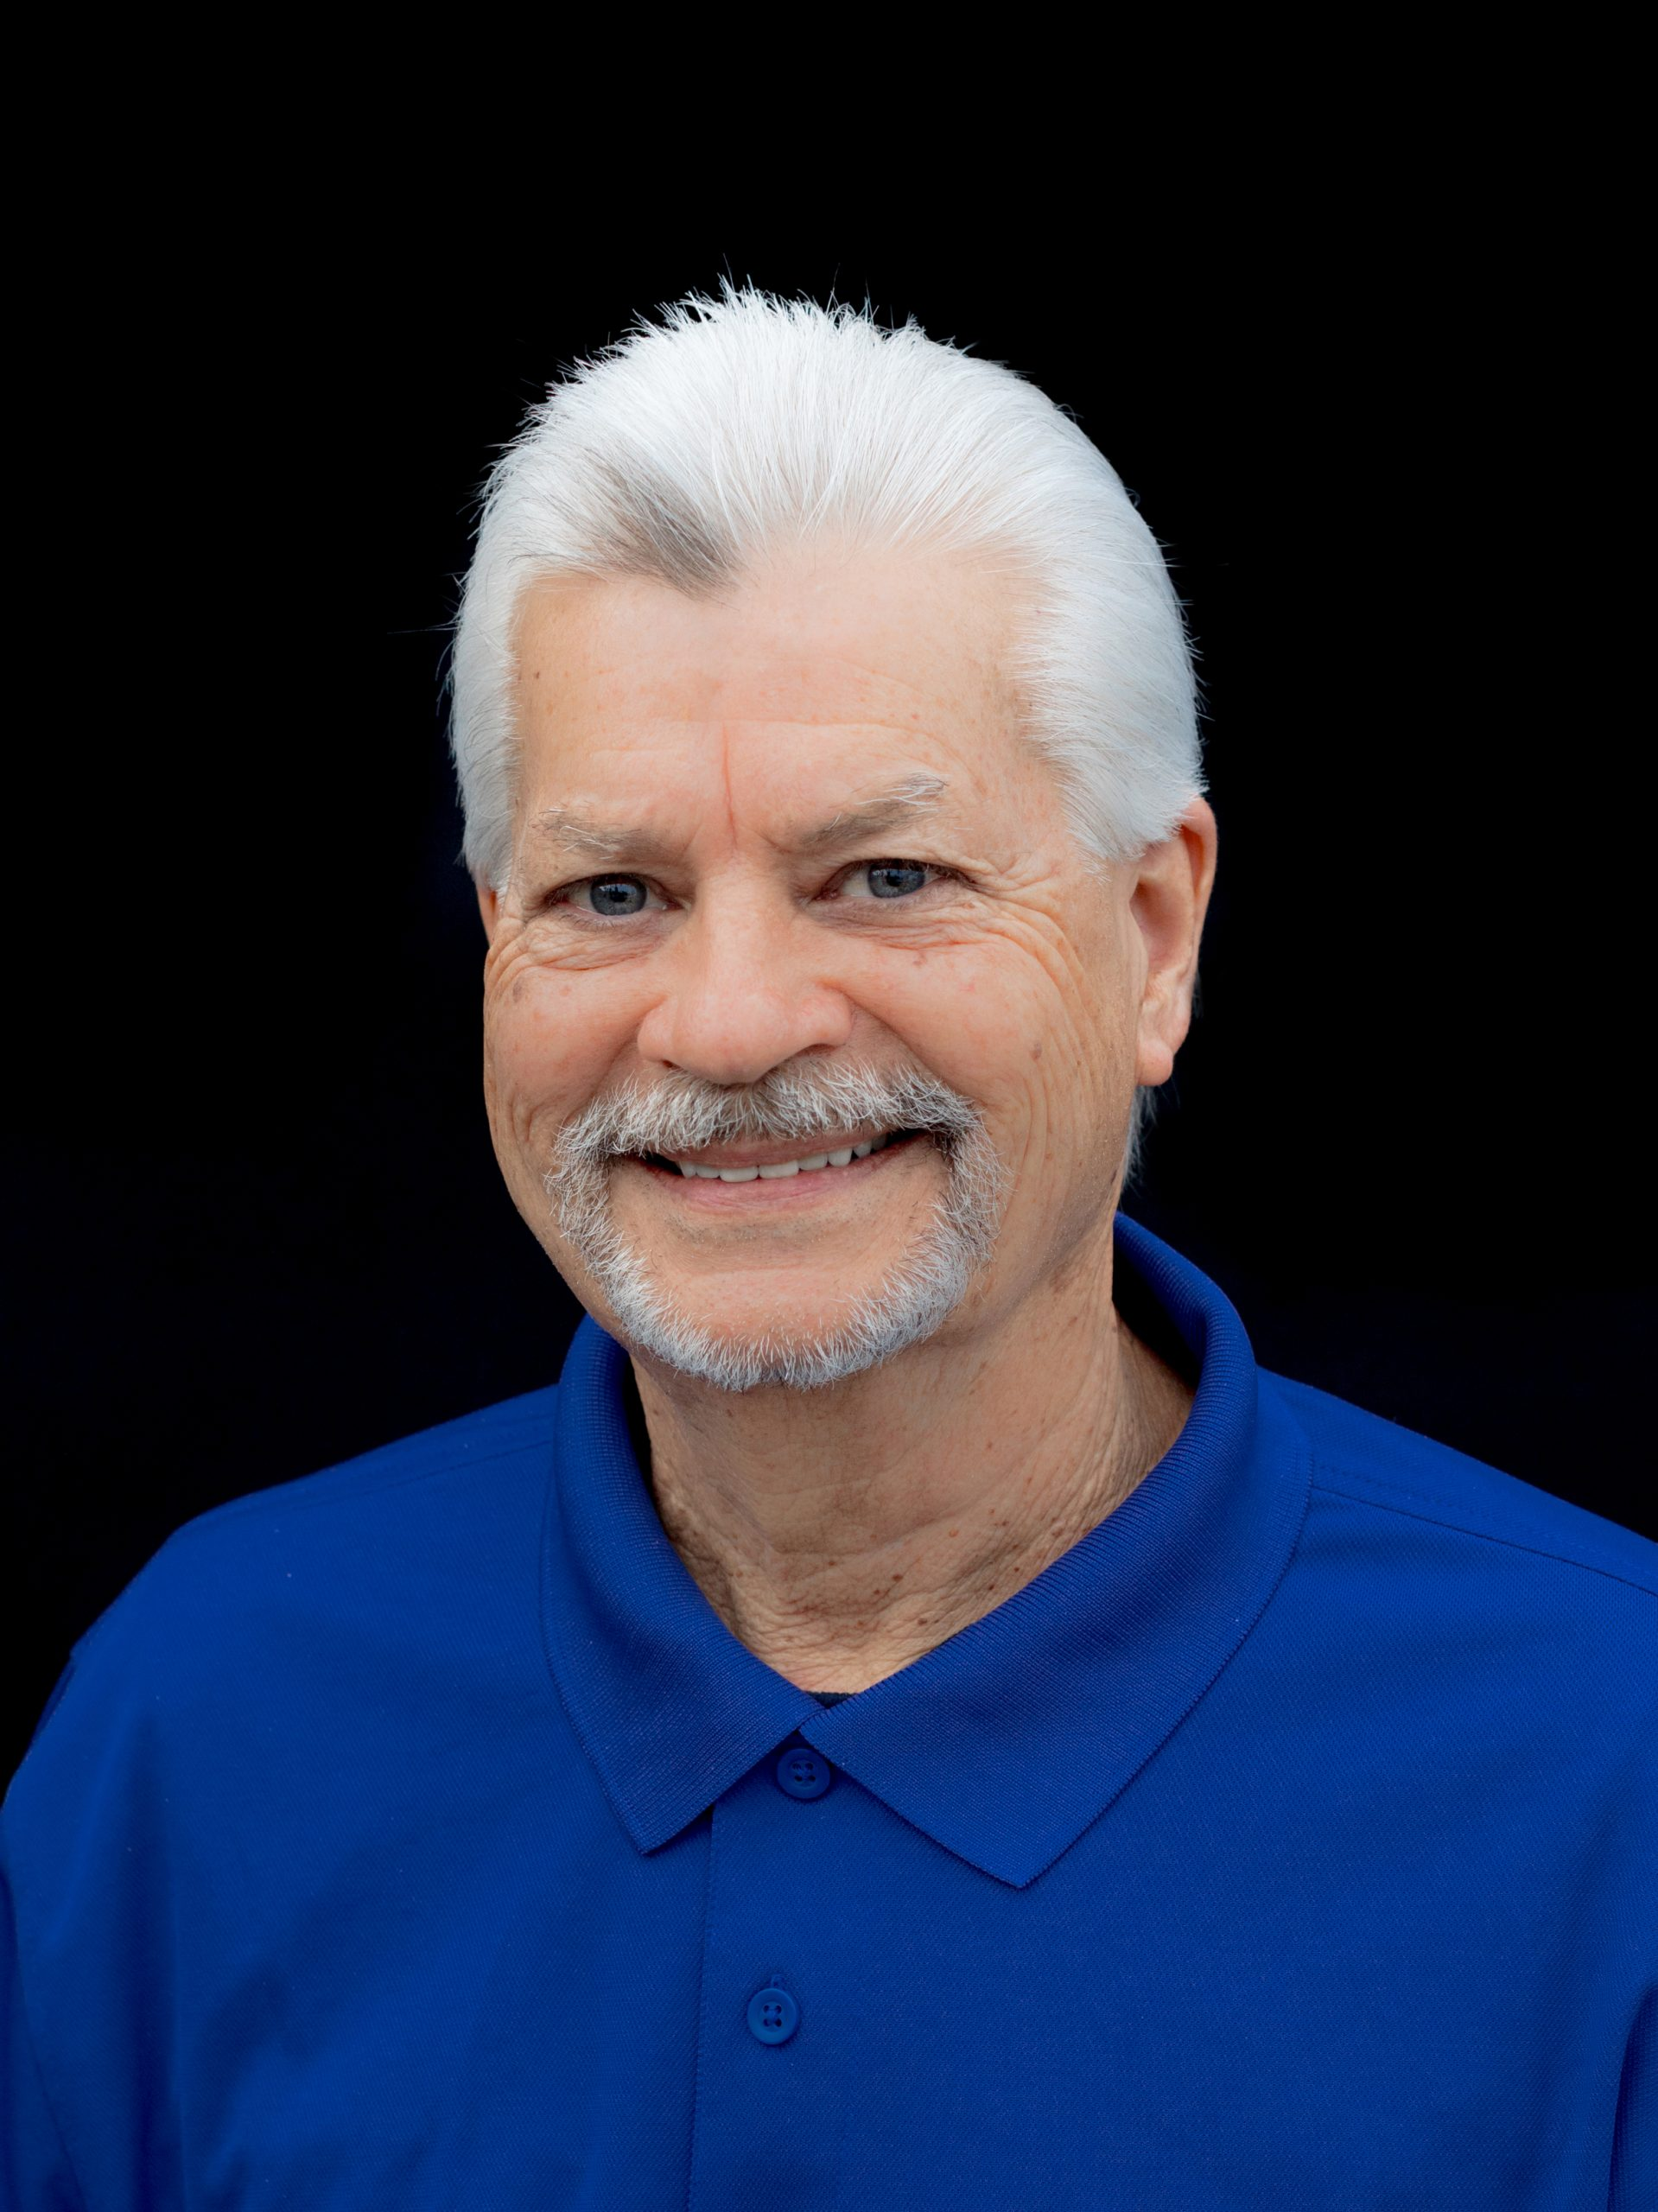 Steve is a 48 year veteran of the dental industry and has brought his knowledge to the Artisan Dental Lab.